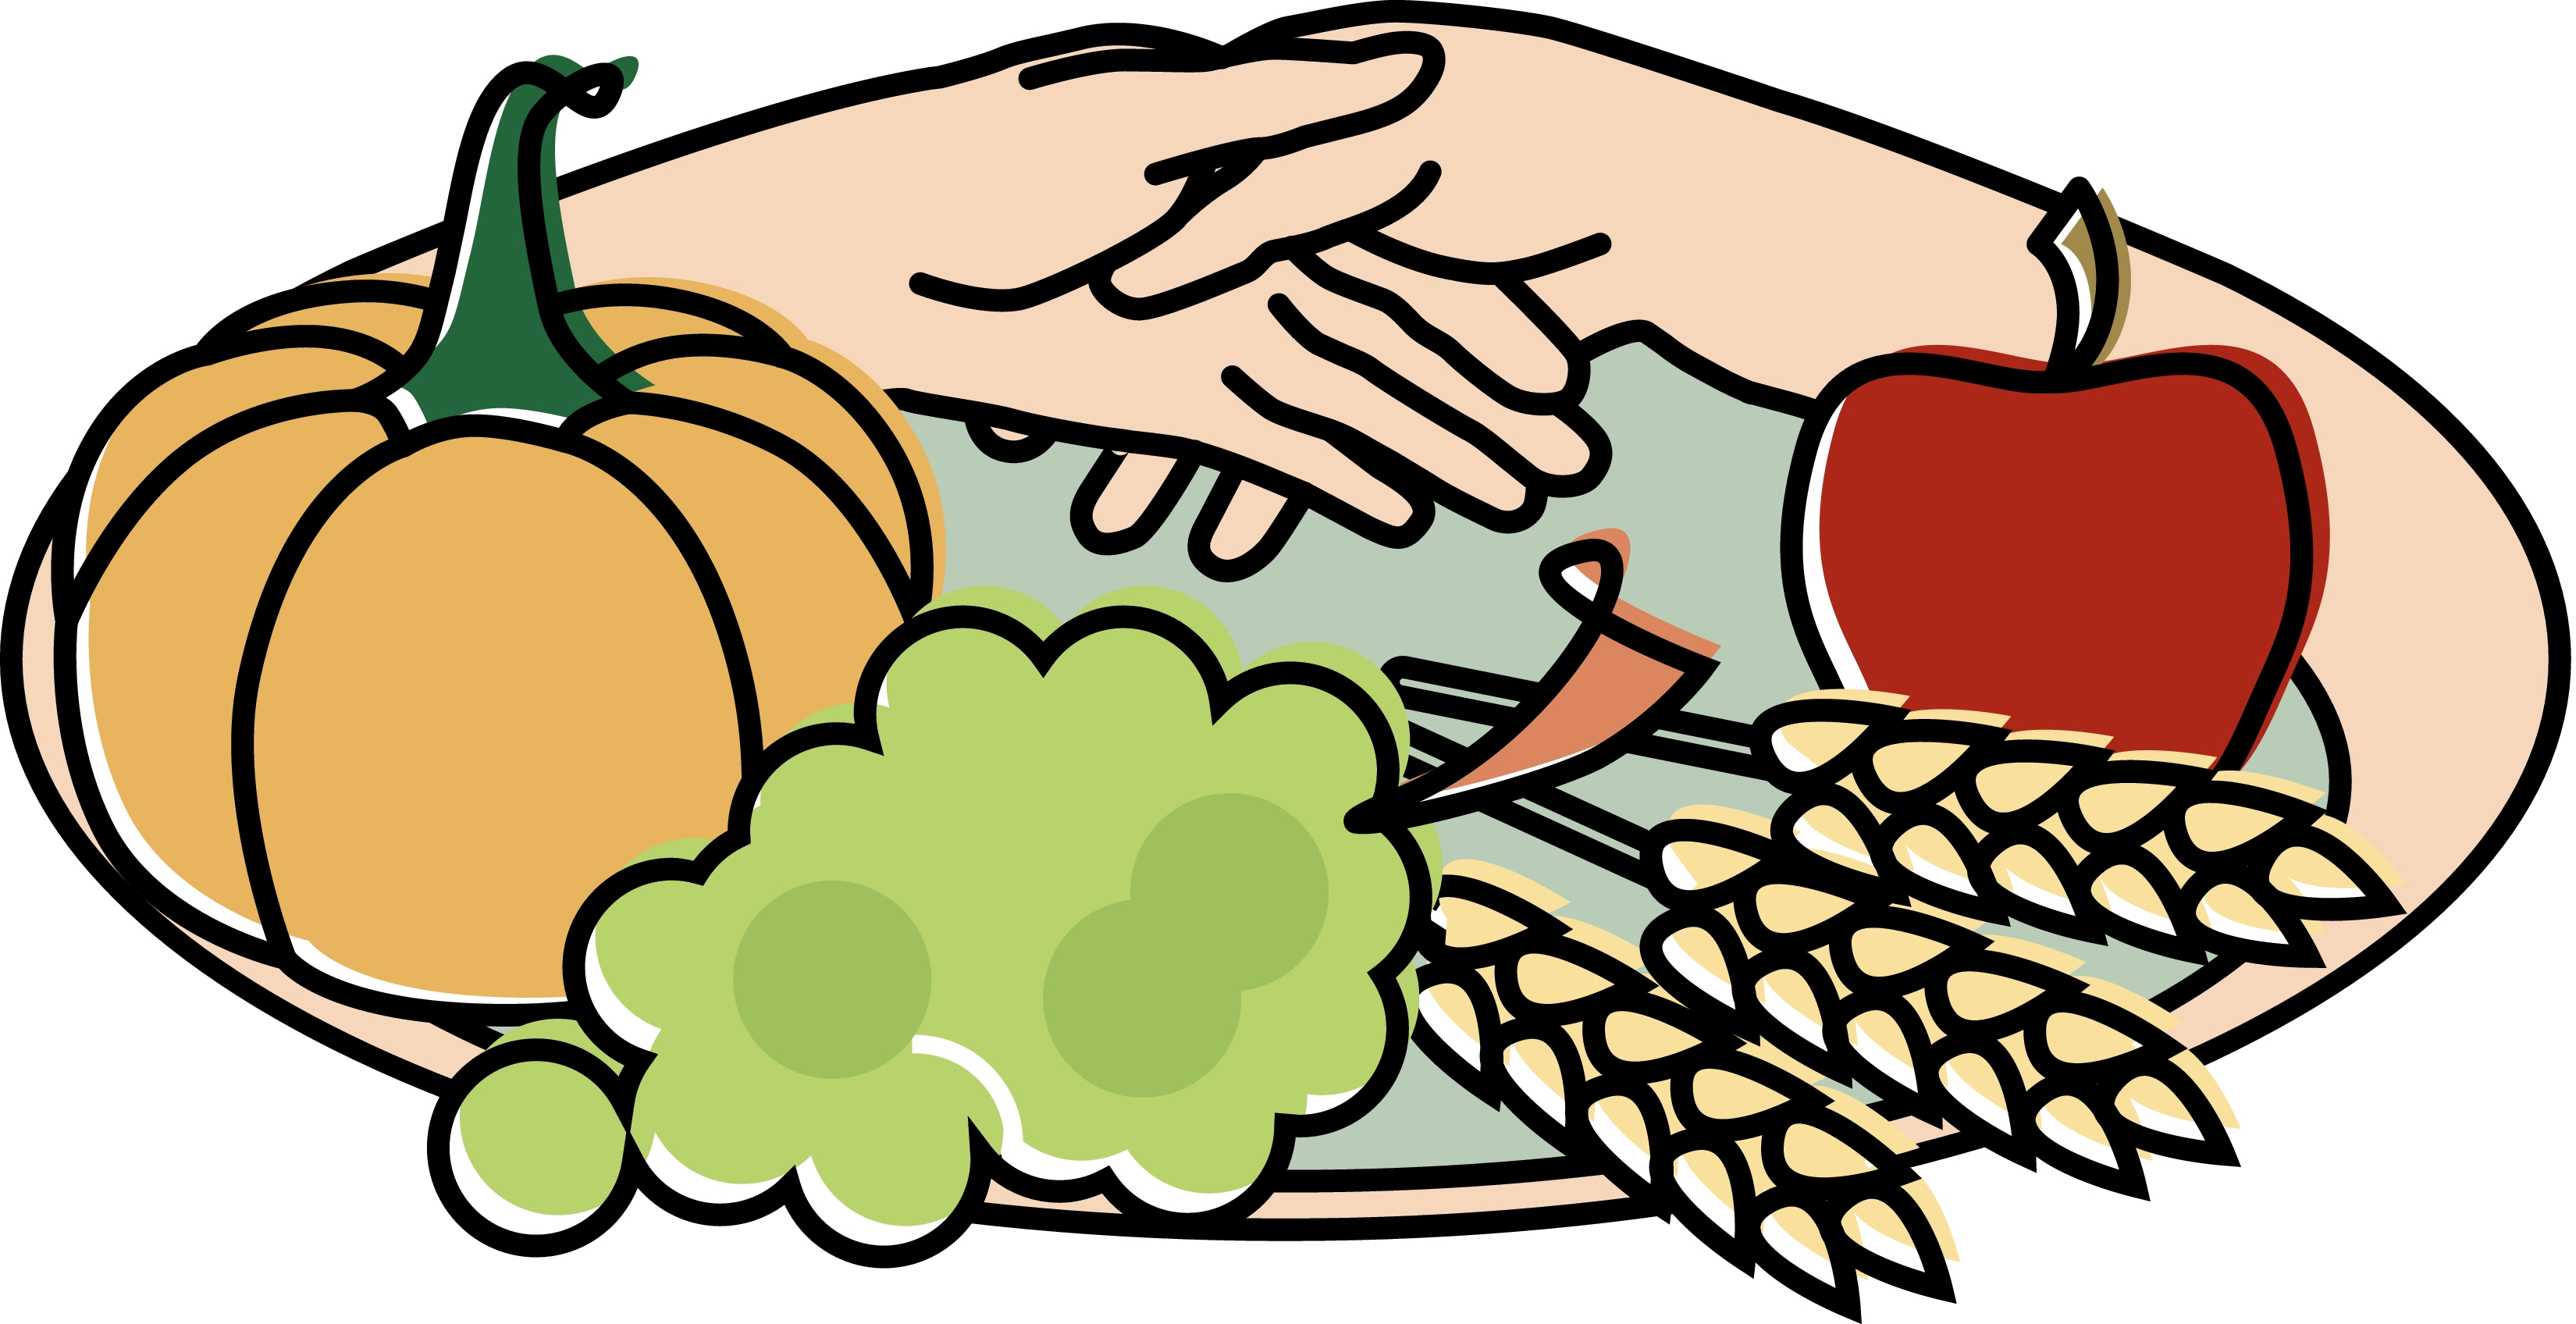 Canned Goods Clipart